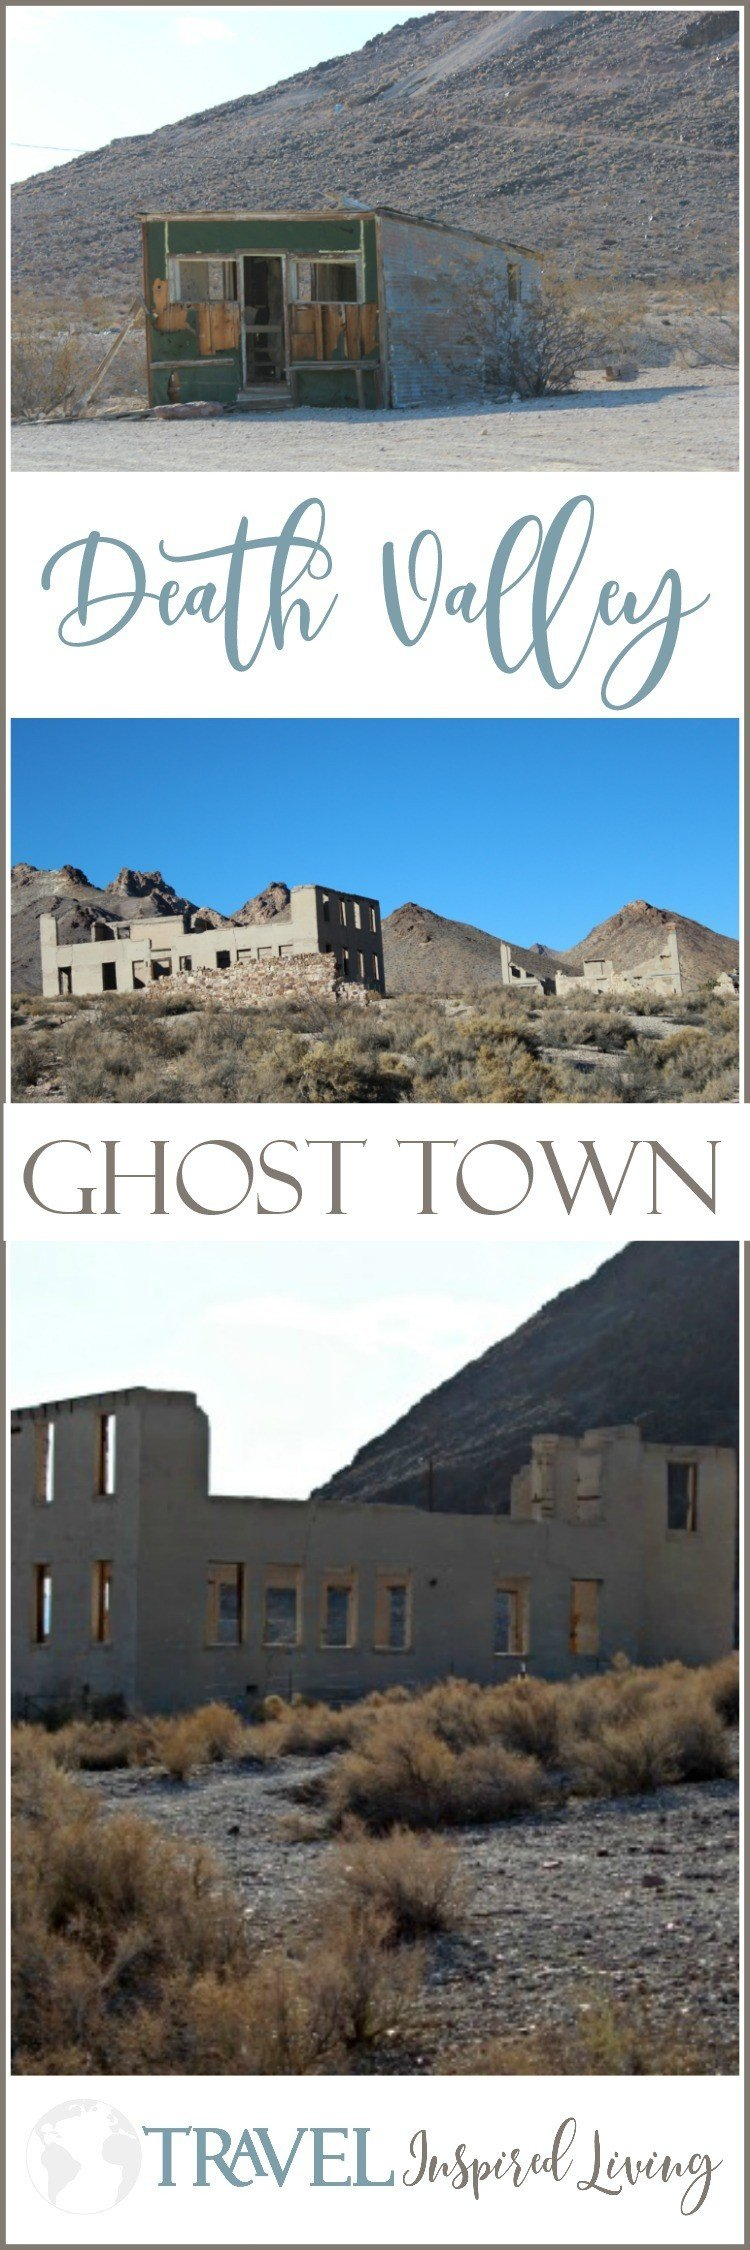 Death Valley has several ghost towns, this is one.